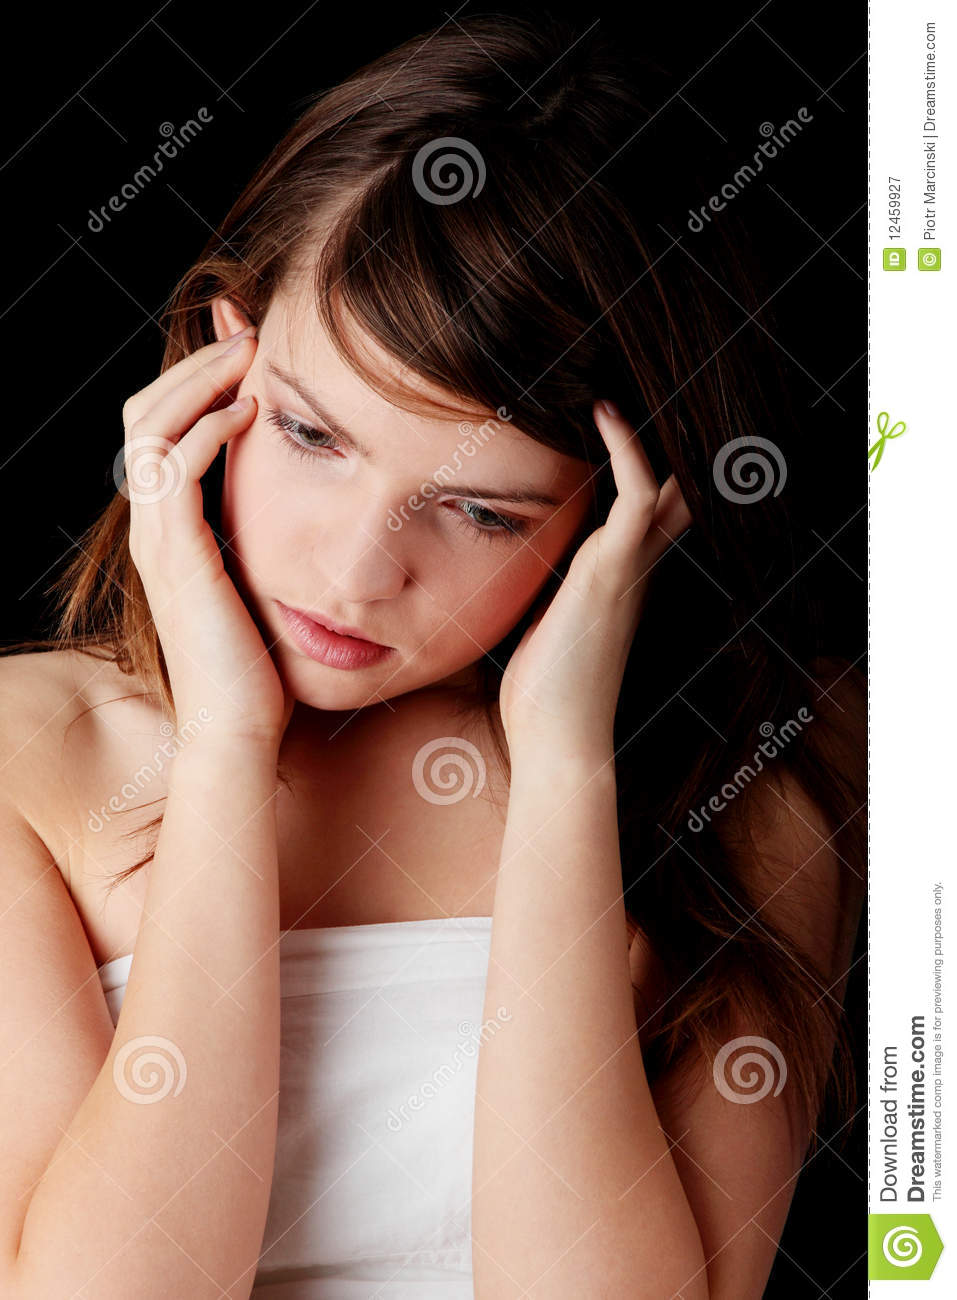 analizing teenage depression Learn what teen depression looks like in teens and what you can do to help your child but teen depression goes beyond moodiness it's a serious health problem that impacts every aspect of a.